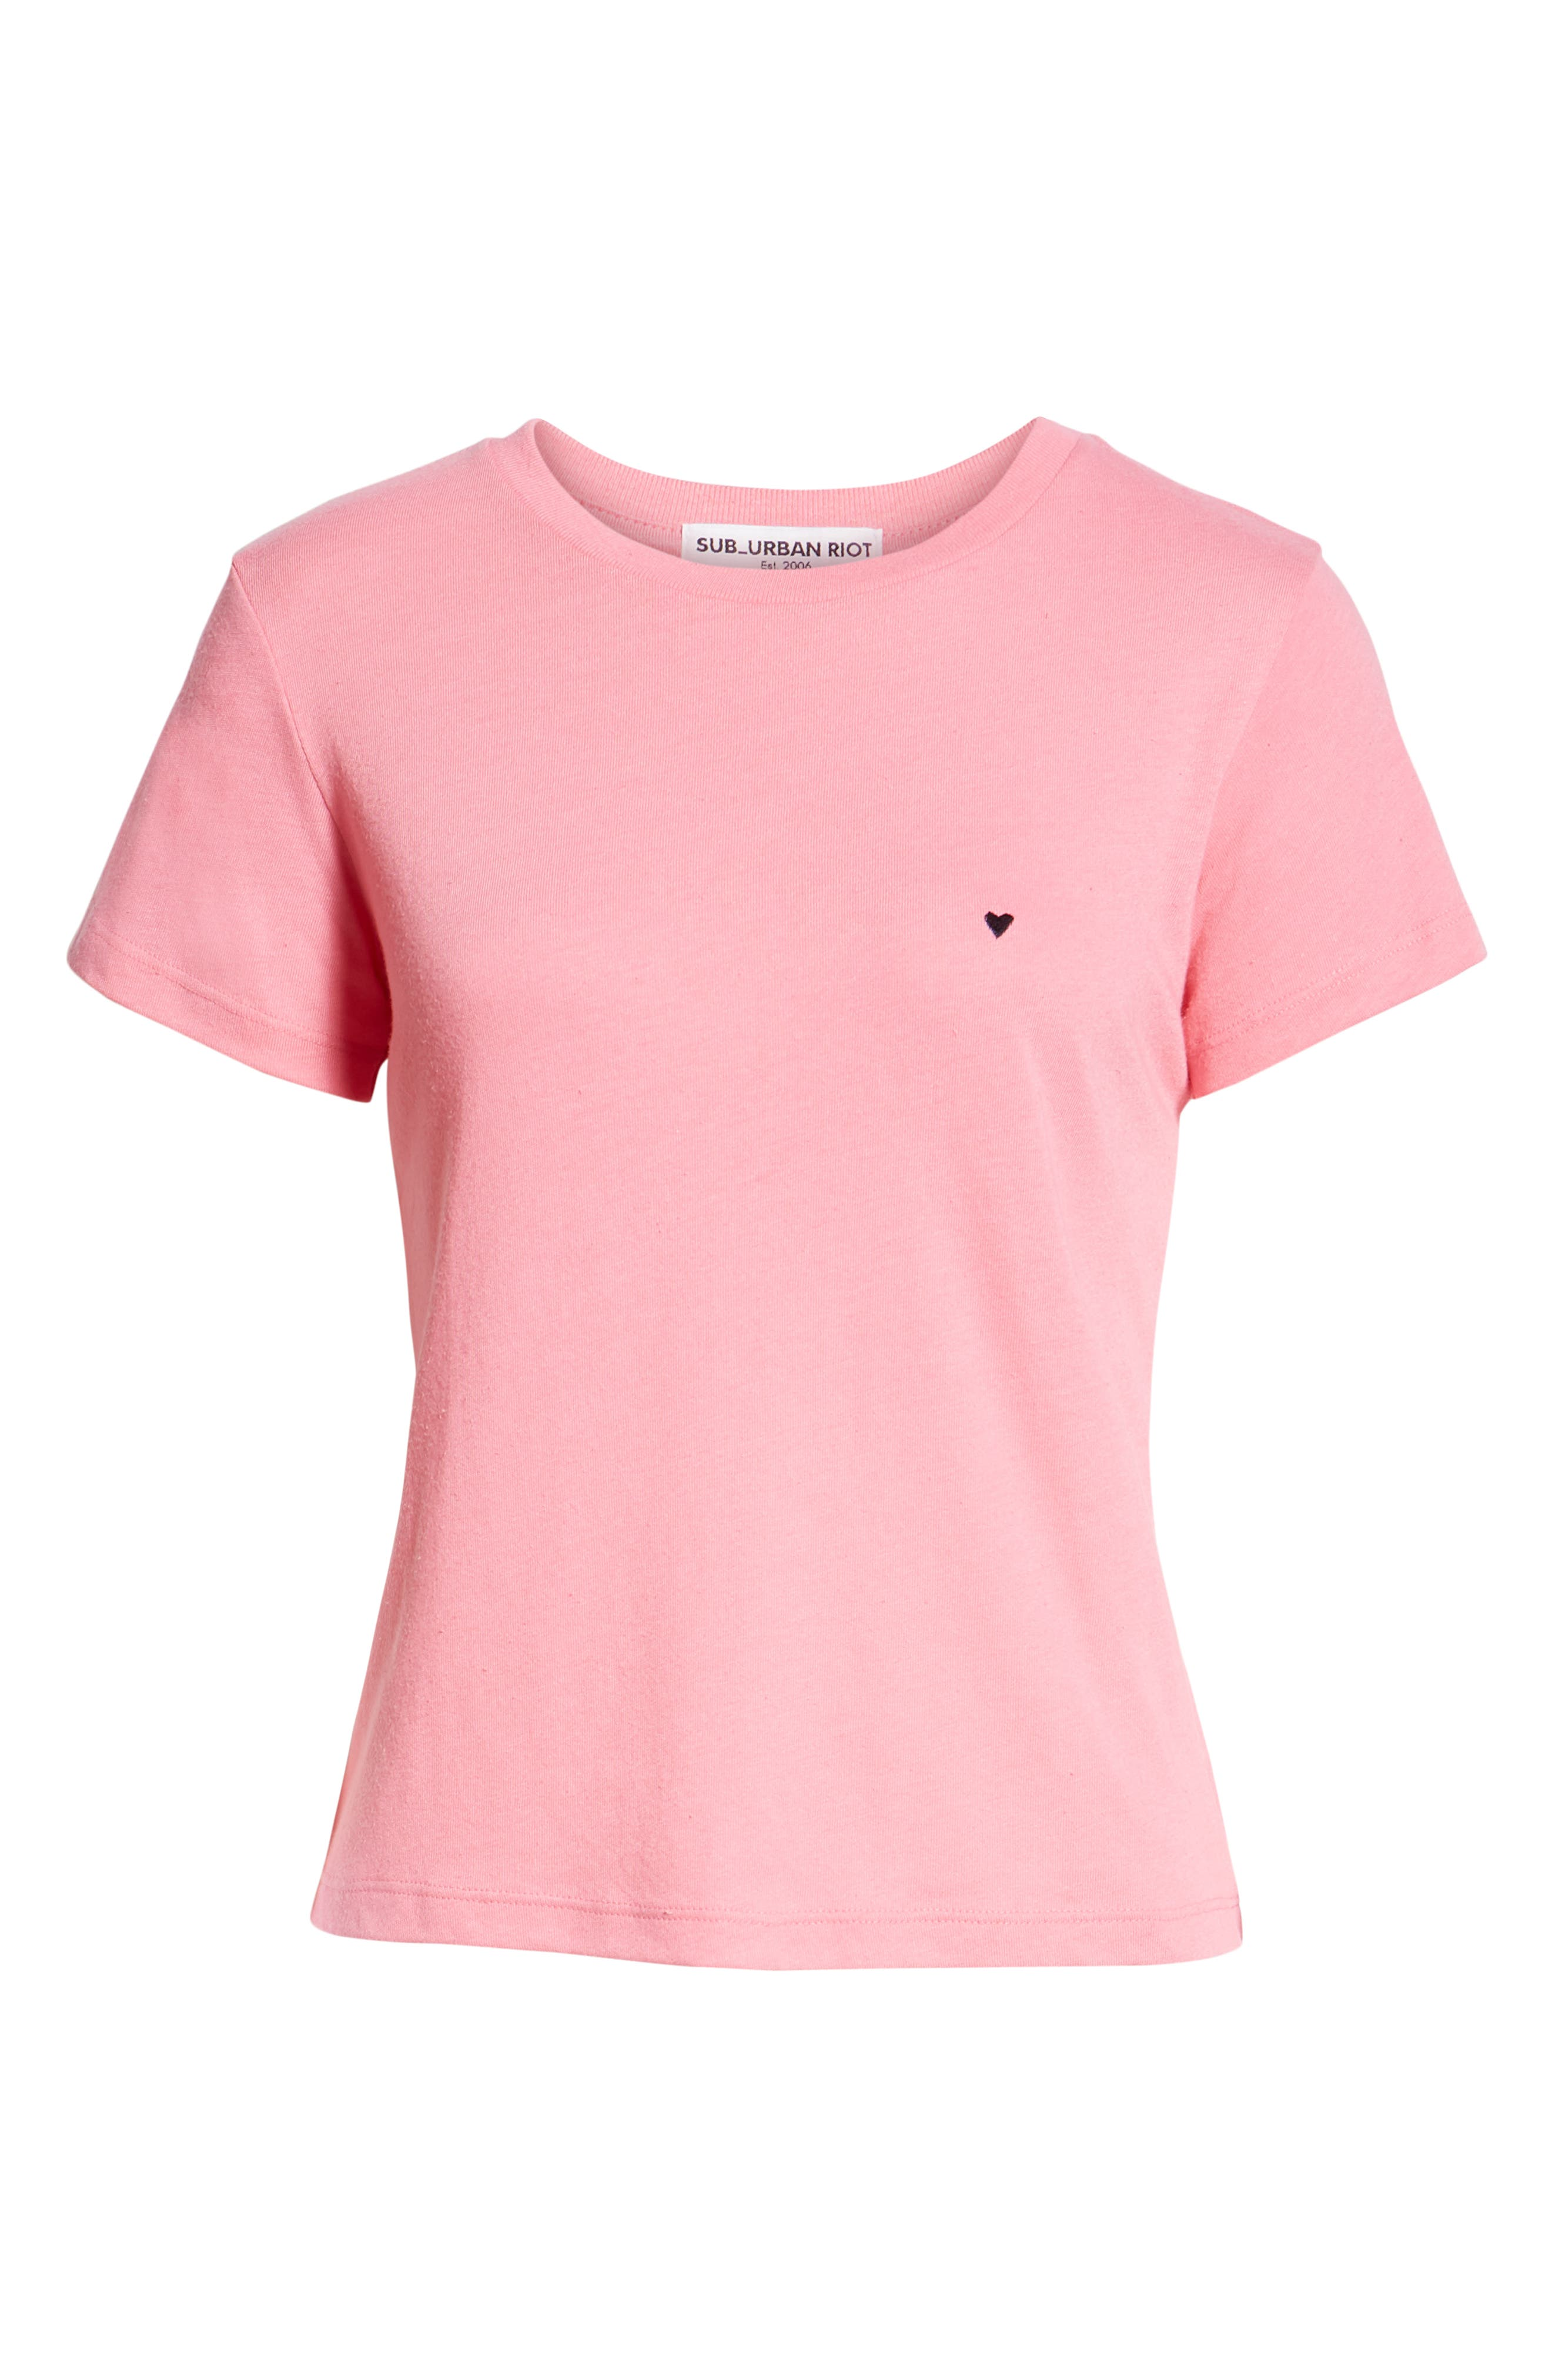 Embroidered Heart Tee,                             Alternate thumbnail 6, color,                             PINK